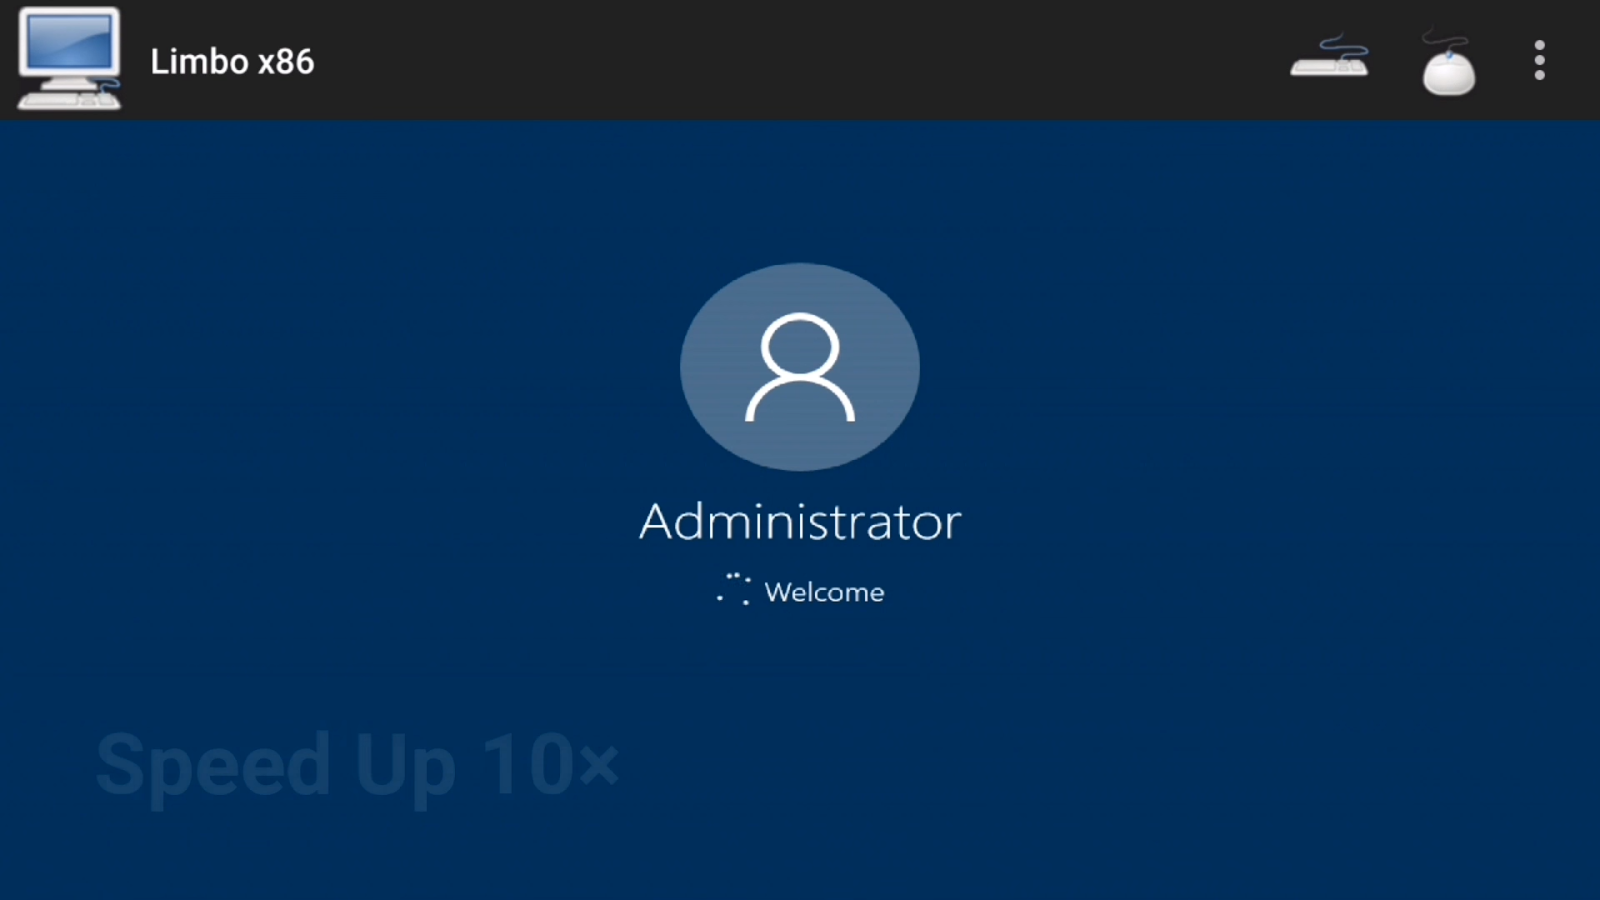 How to Install Windows 10 on Any Android Phone using Limbo